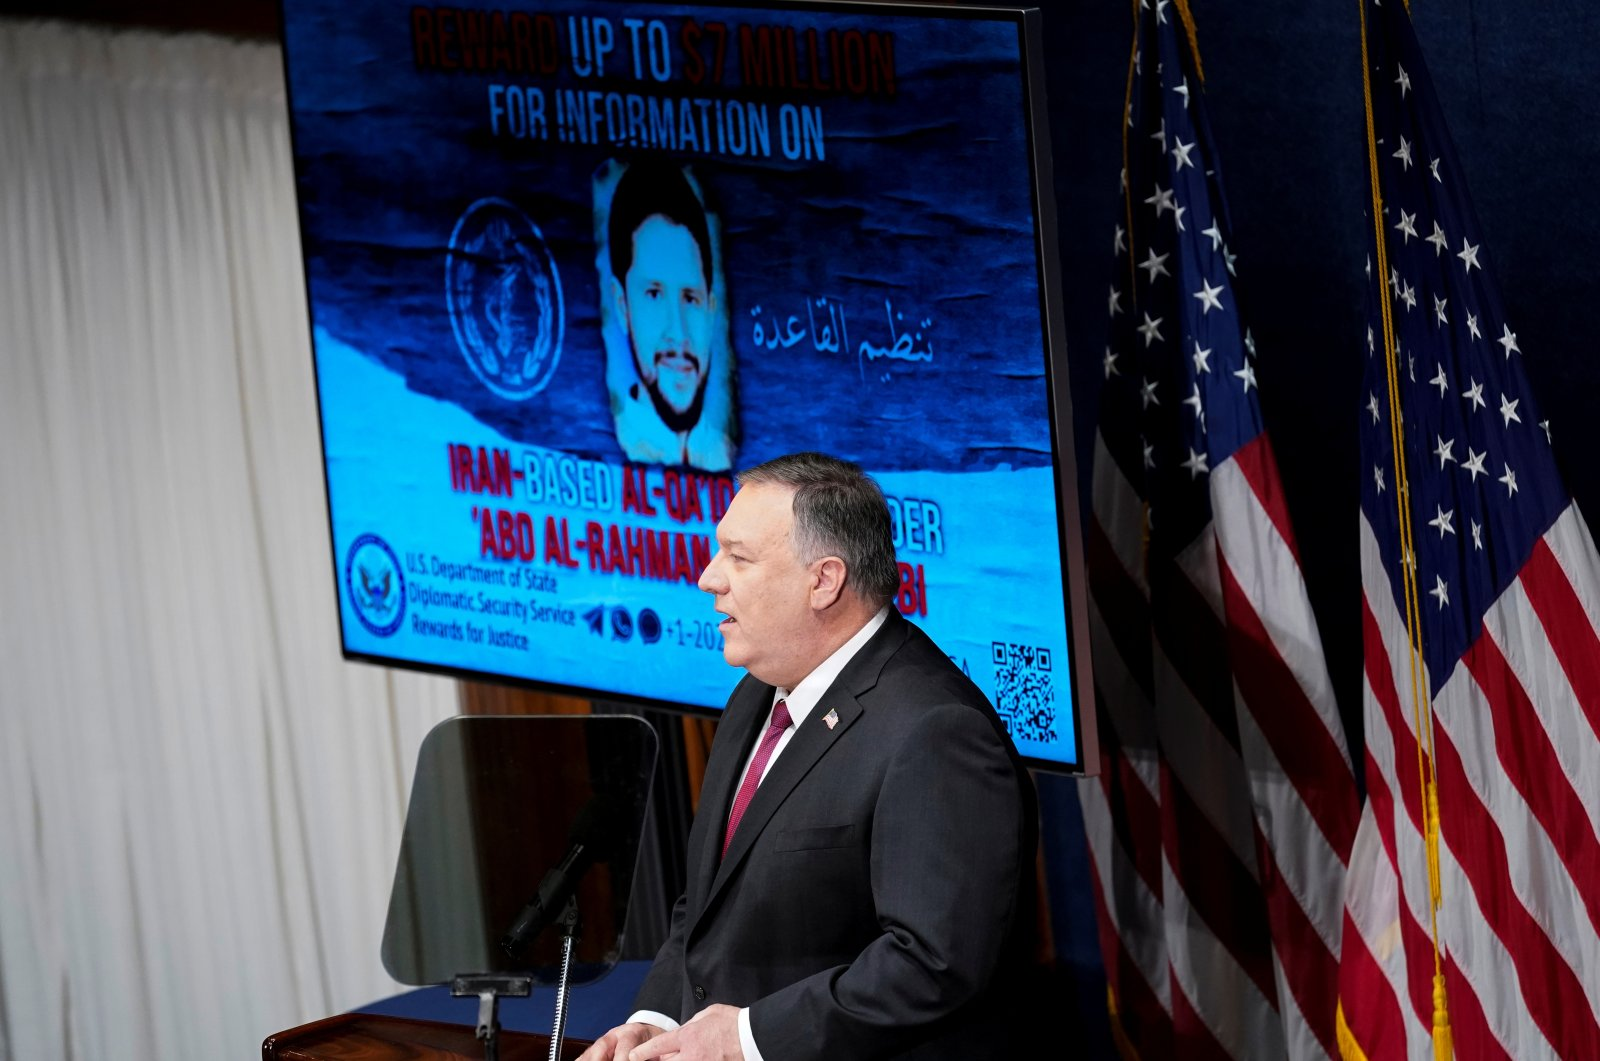 Secretary of State Mike Pompeo speaks at the National Press Club in Washington, D.C., U.S., Jan. 12, 2021. (Reuters Photo)